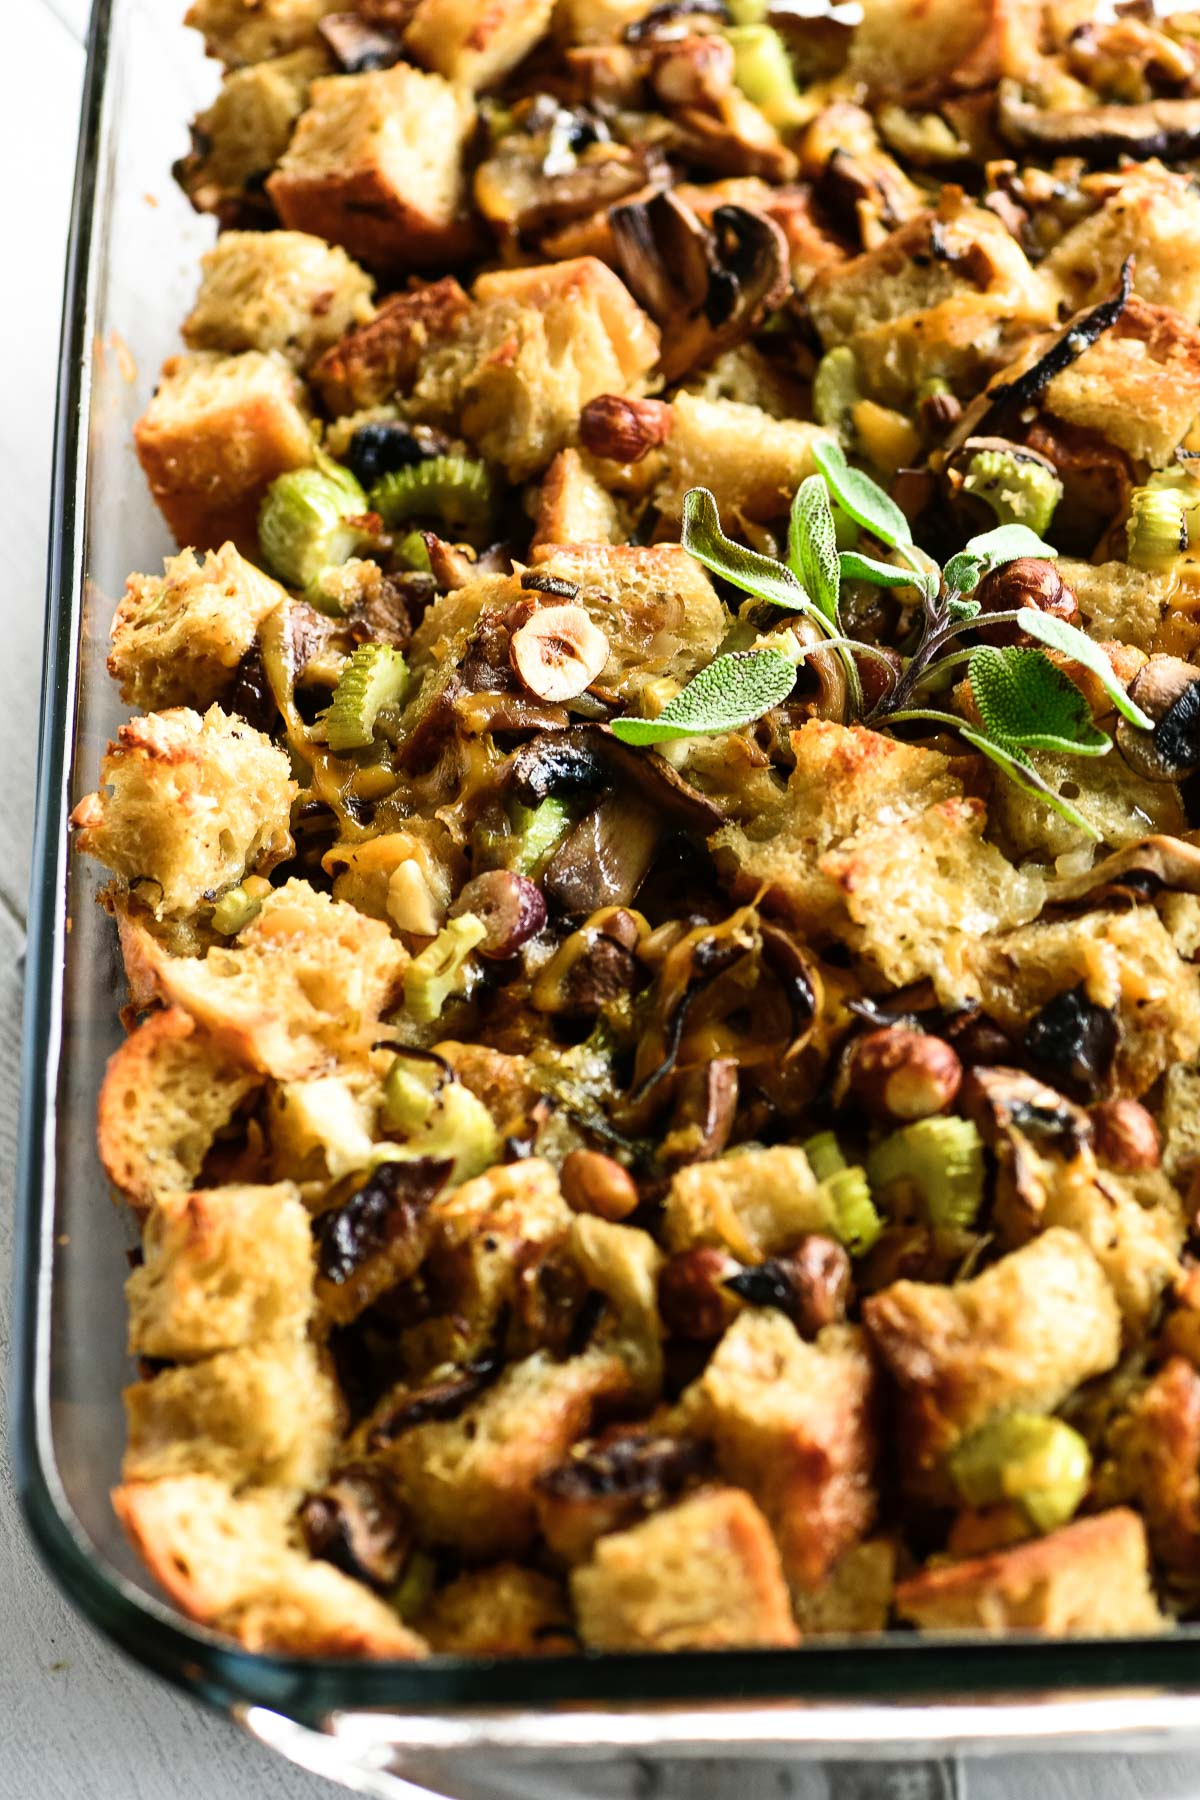 mushroom stuffing with hazelnuts and sage in a glass casserole dish